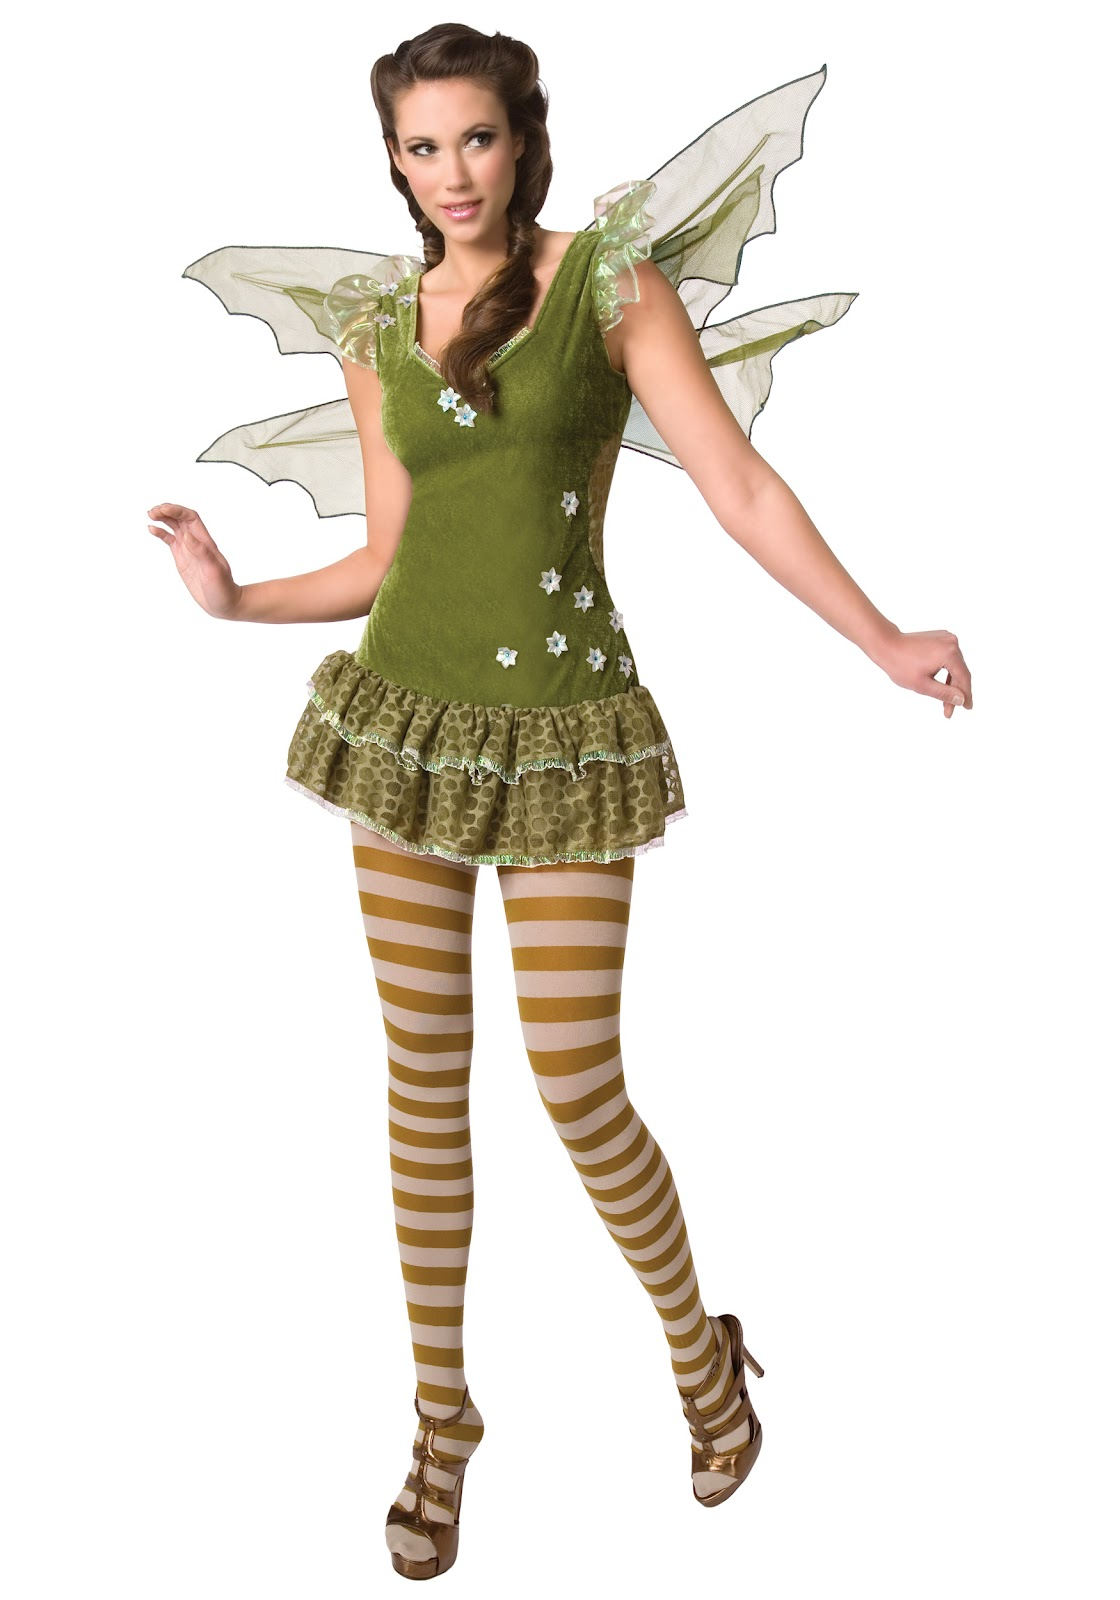 Adult halloween outfits